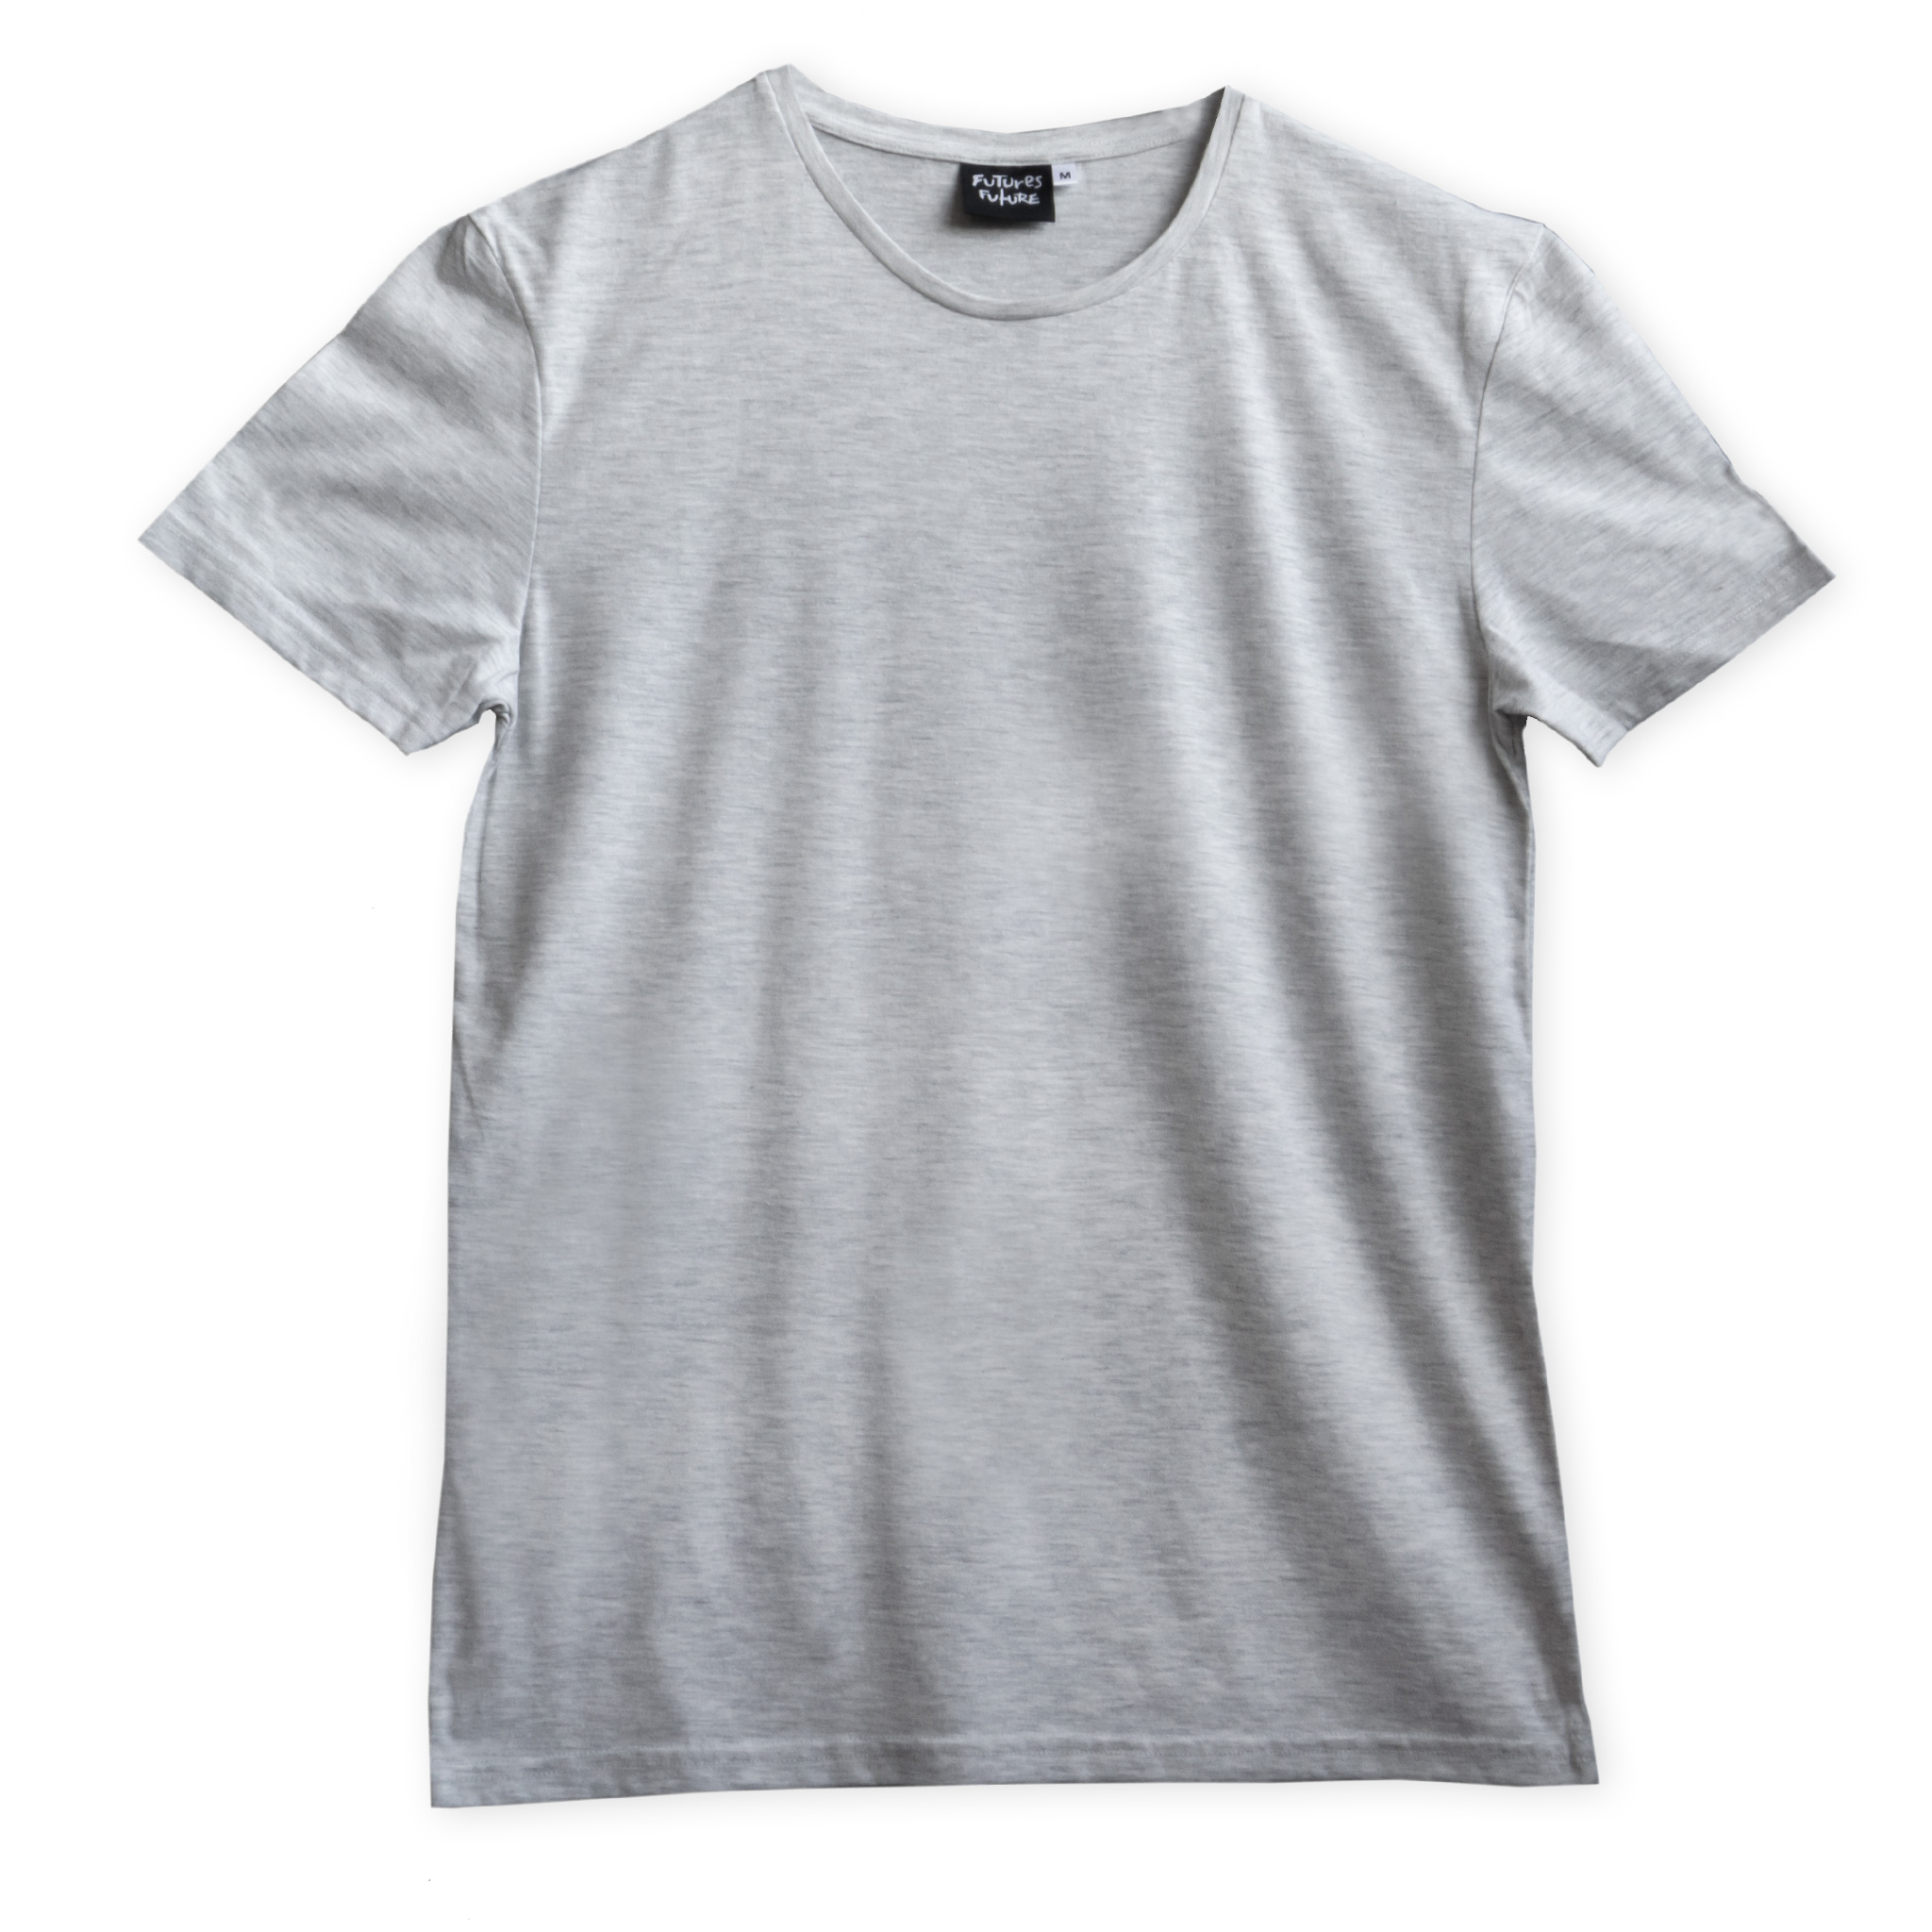 T-shirt men grey